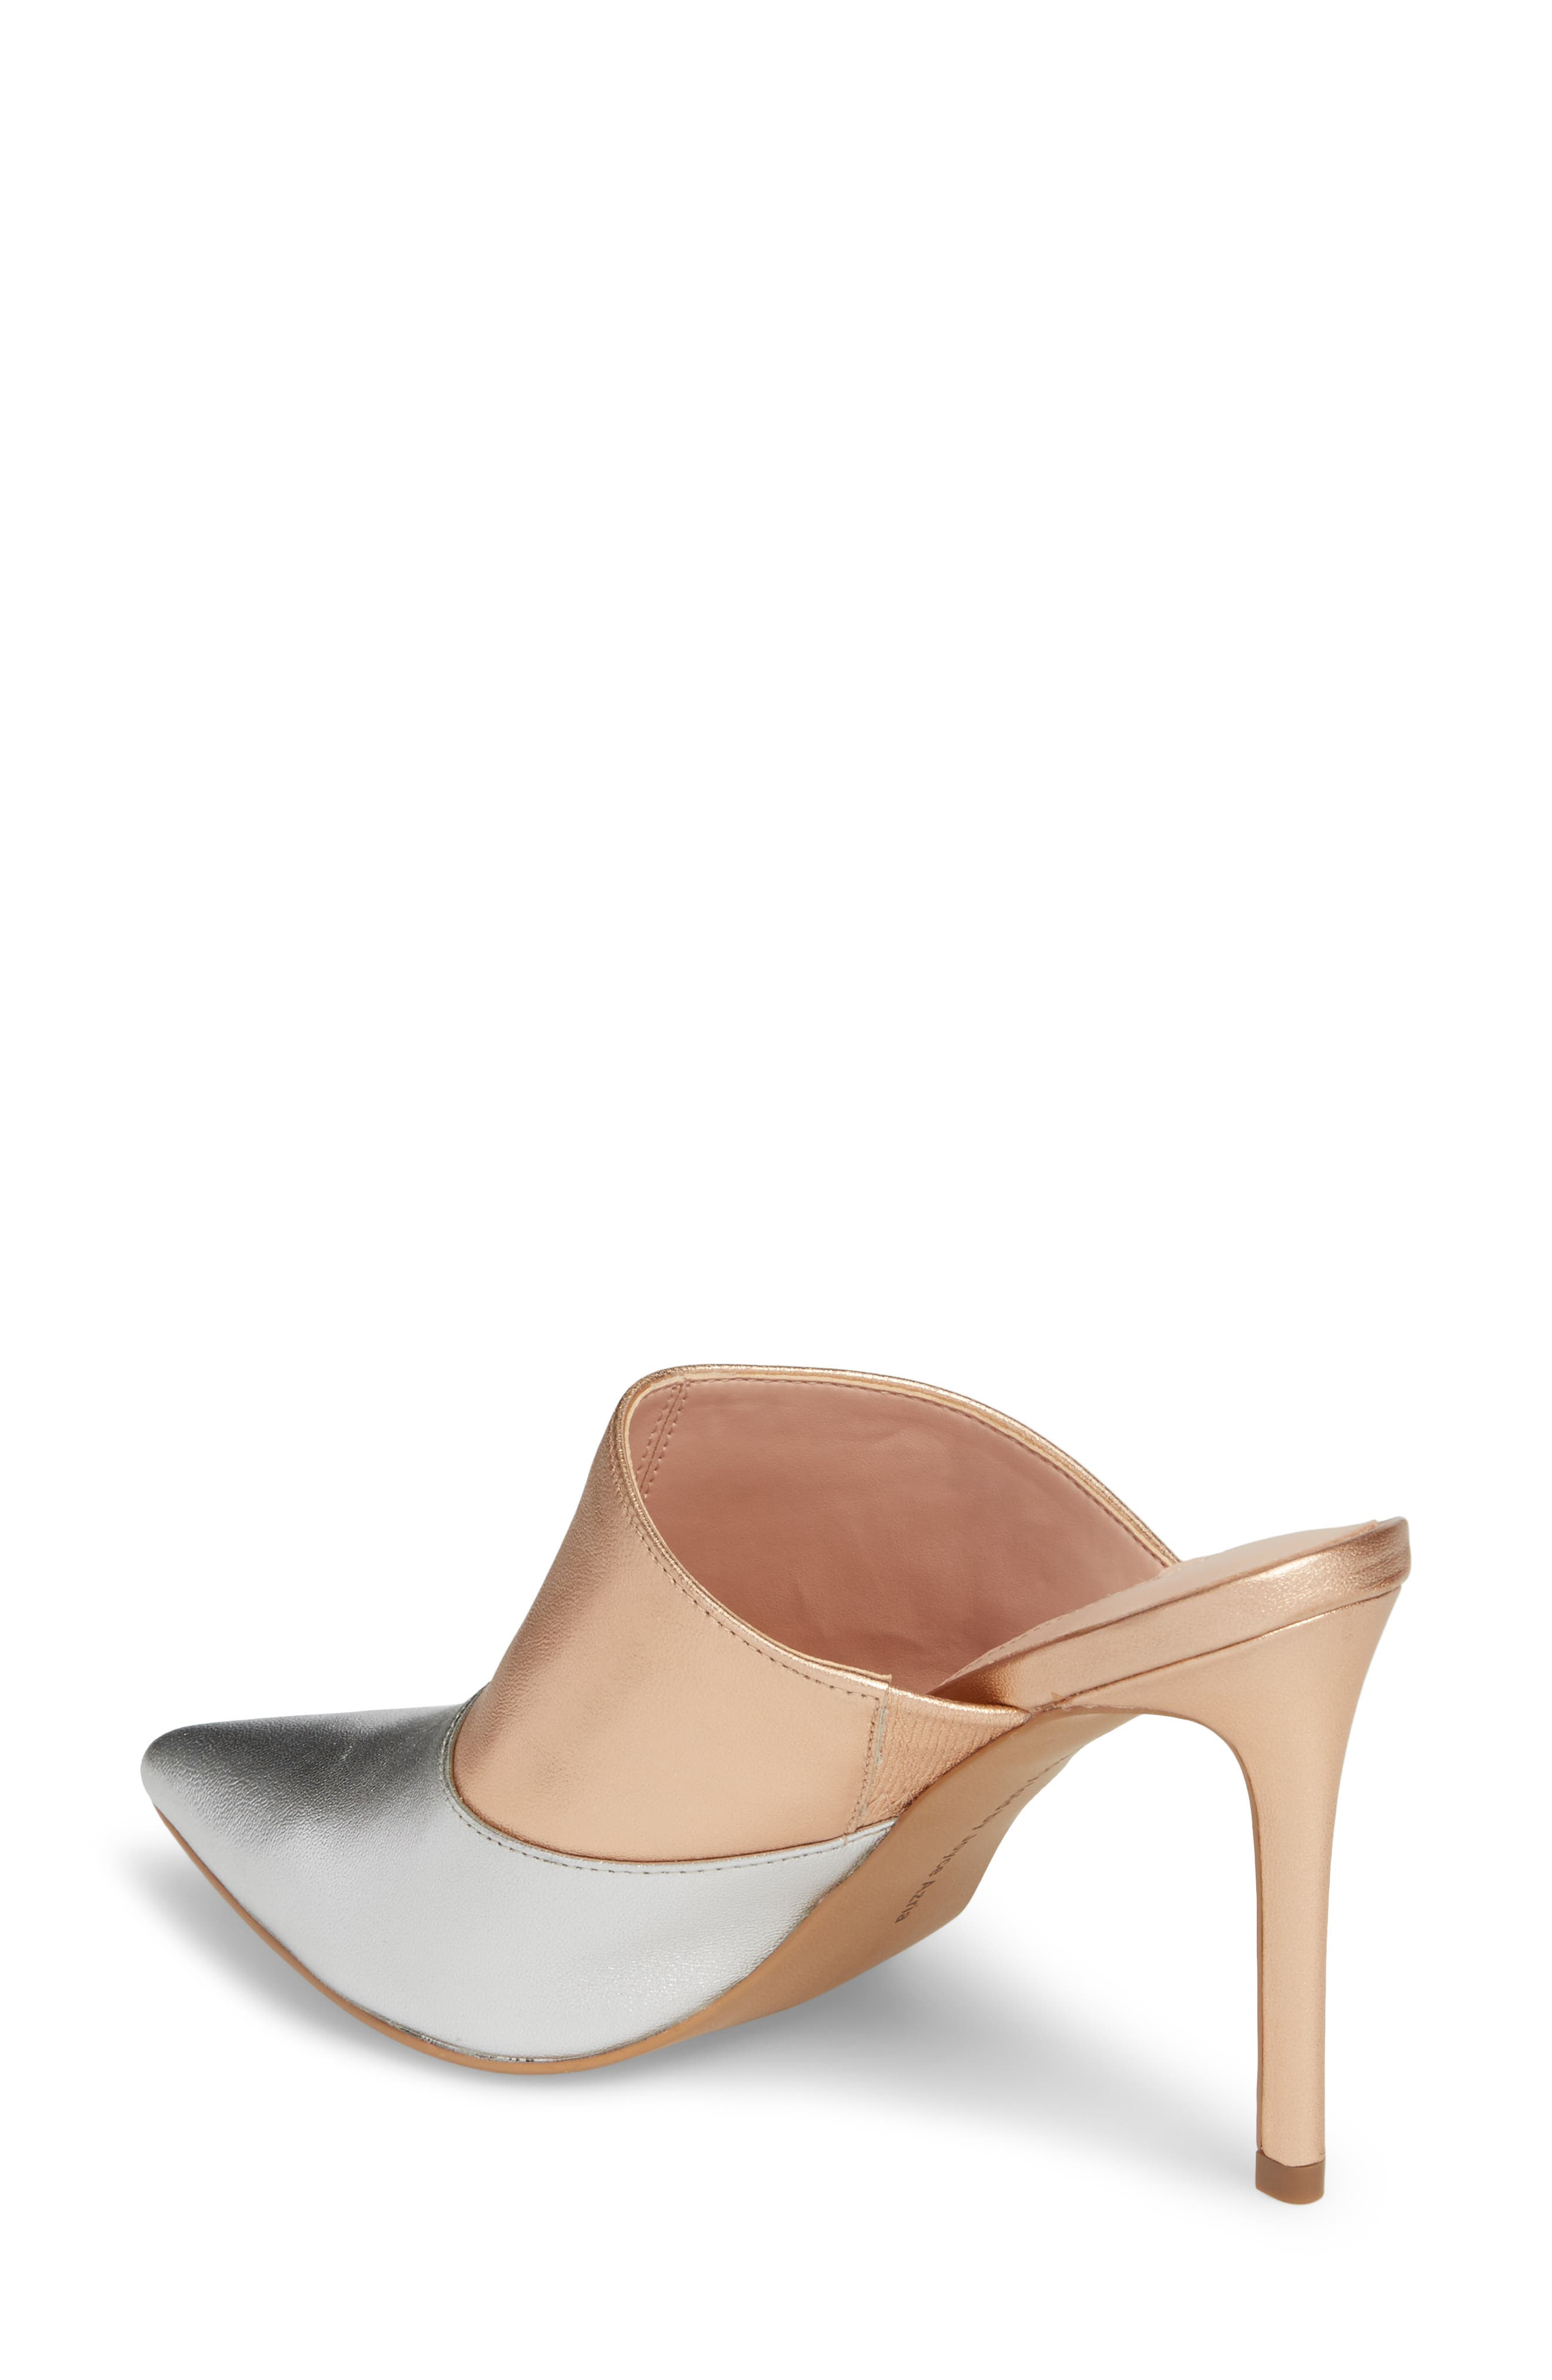 Joelle High Heel Mule,                             Alternate thumbnail 2, color,                             Silver/ Rose Gold Leather